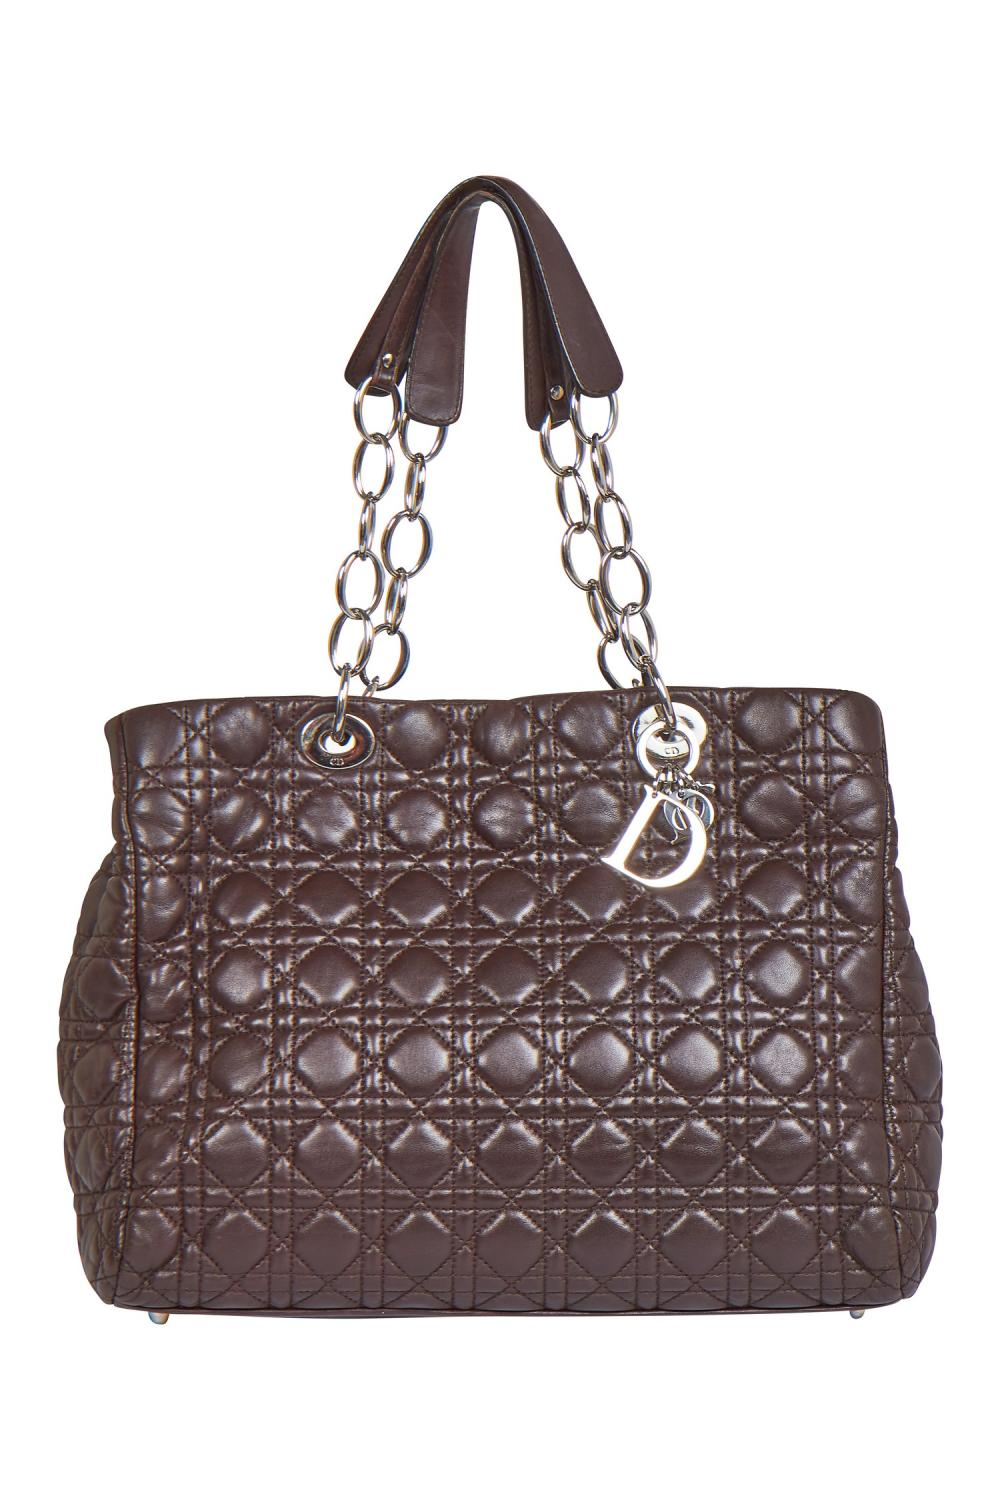 A Dior 'cannage' quilted brown lambskin leather shopping tote bag, 2000s,